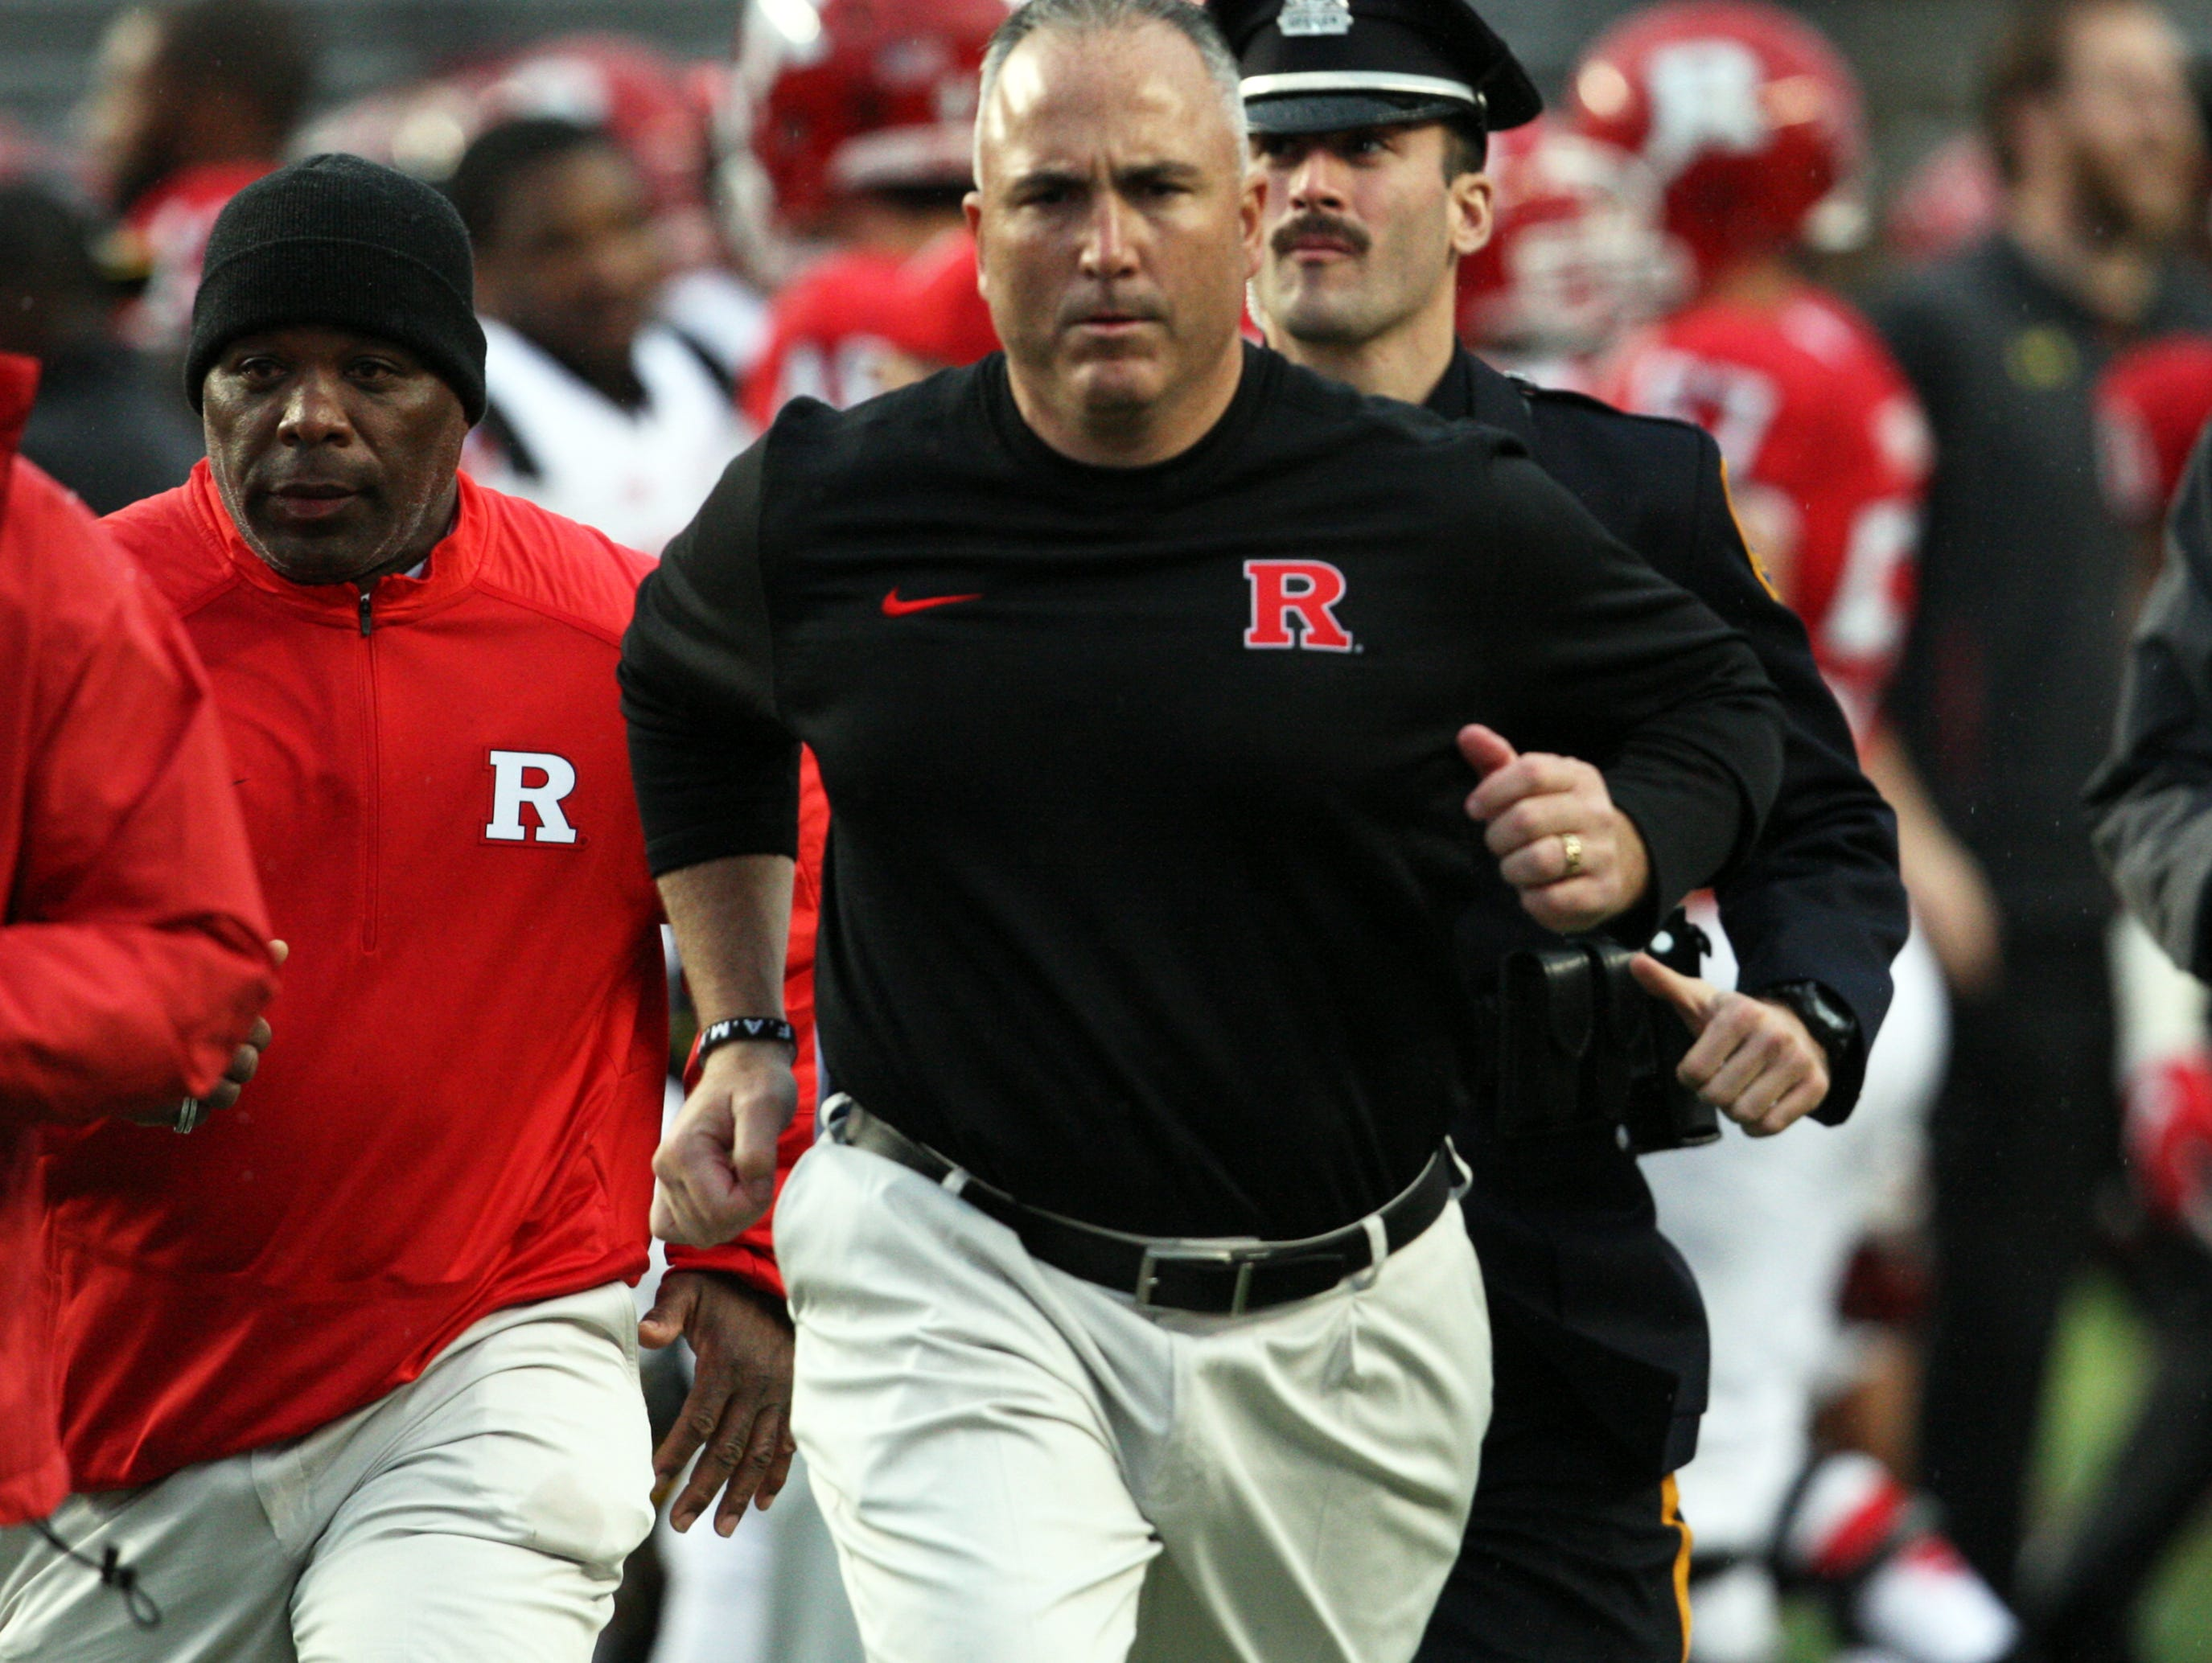 The Rutgers Scarlet Knights take on the Terrapins of the University of Maryland in the season finale of Big Ten football season at High Point Solutions Stadium in Piscataway on Saturday November 28,2015. Rutgers head football coach Kyle Flood runs off the field after his team is defeated by Maryland 41- 46.